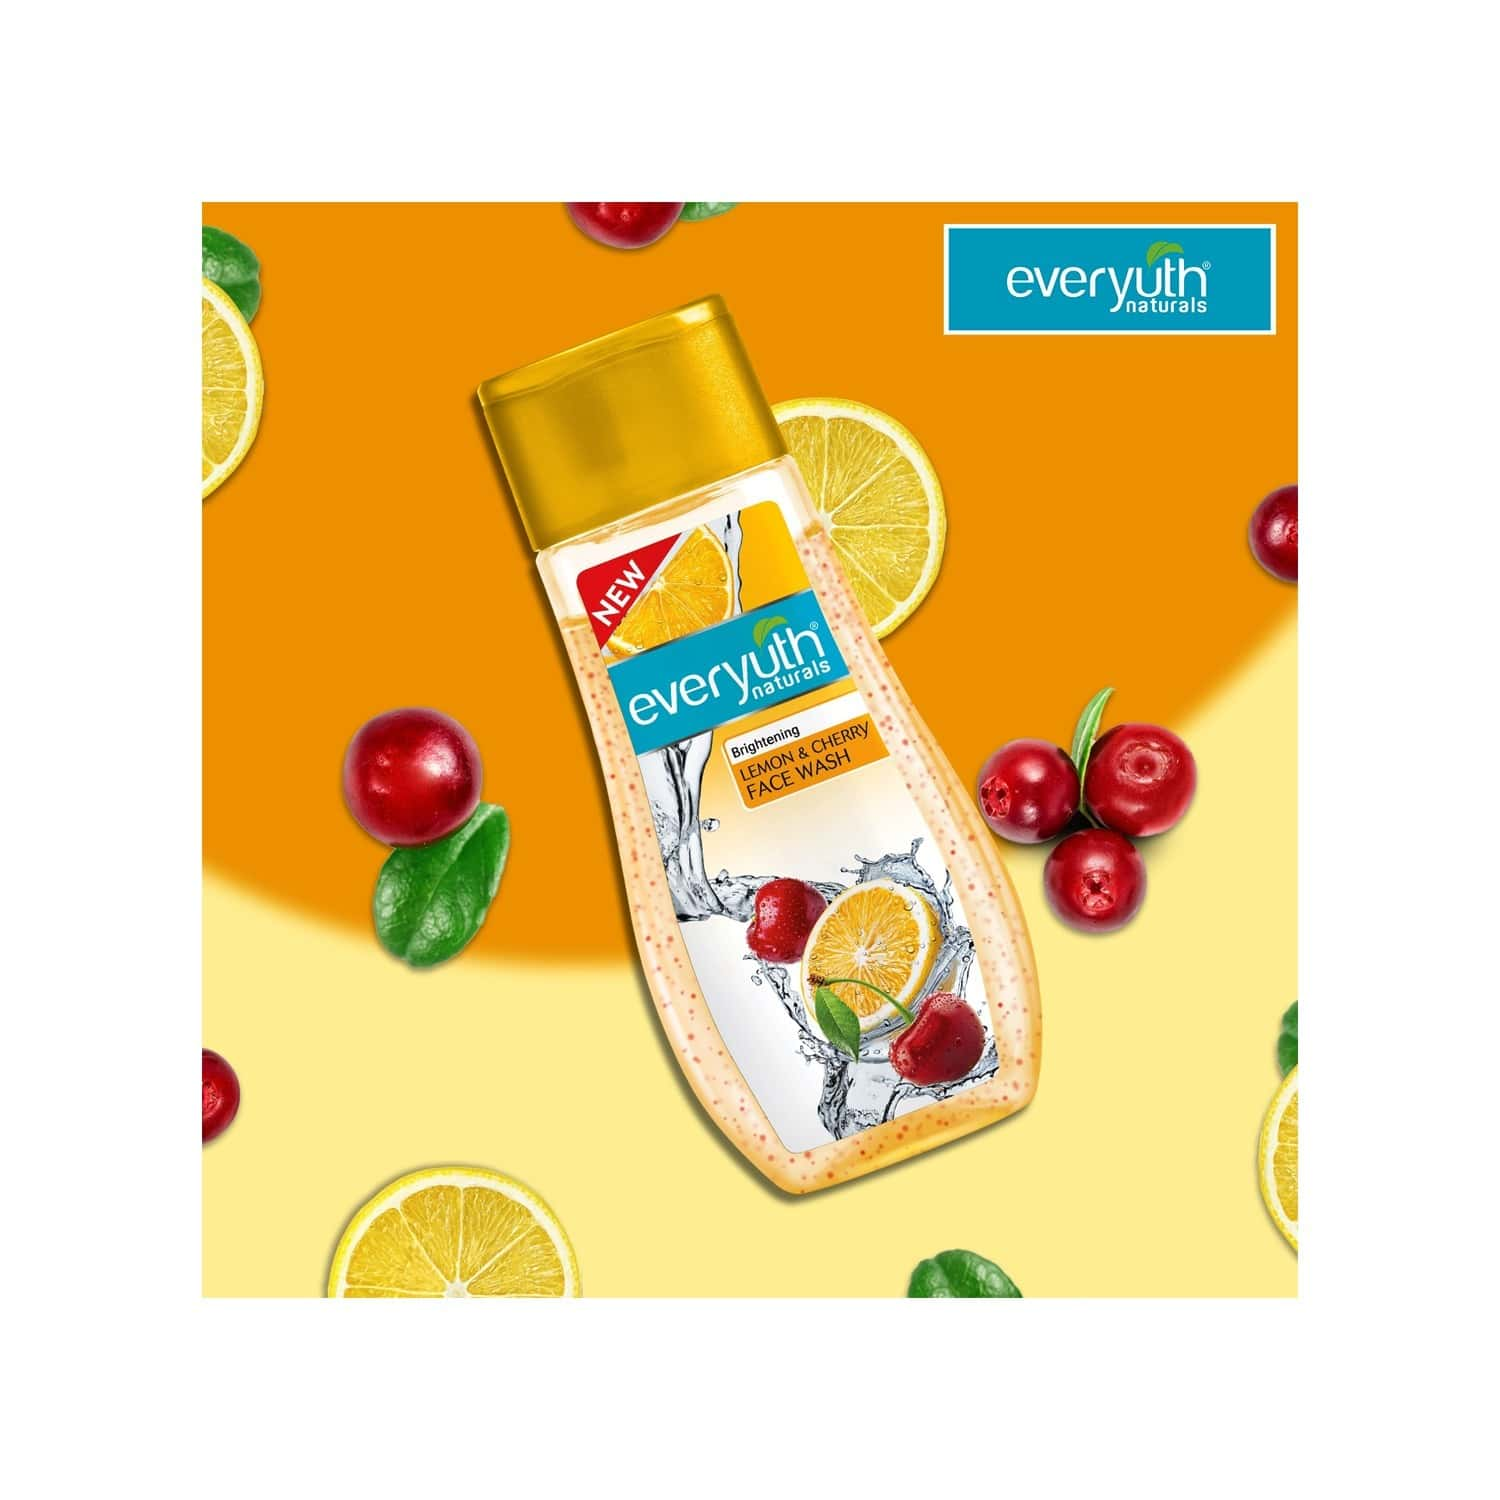 Everyuth Naturals Brightening Lemon & Cherry Face Wash - 100g